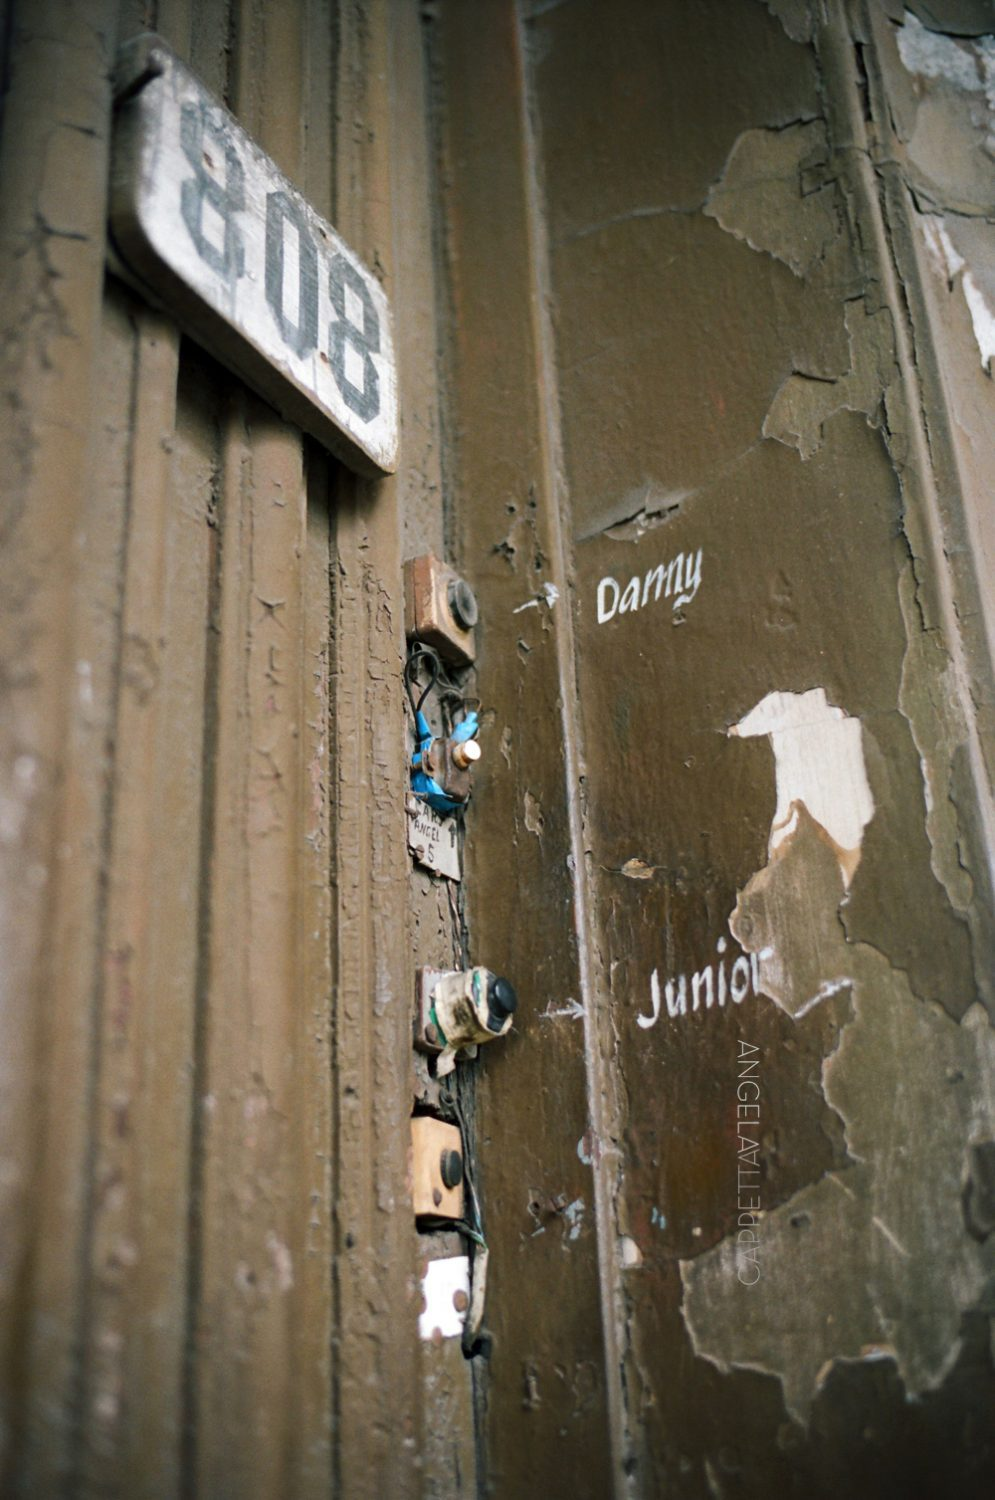 Shooting Real Film, Doorbell, Havana Cuba